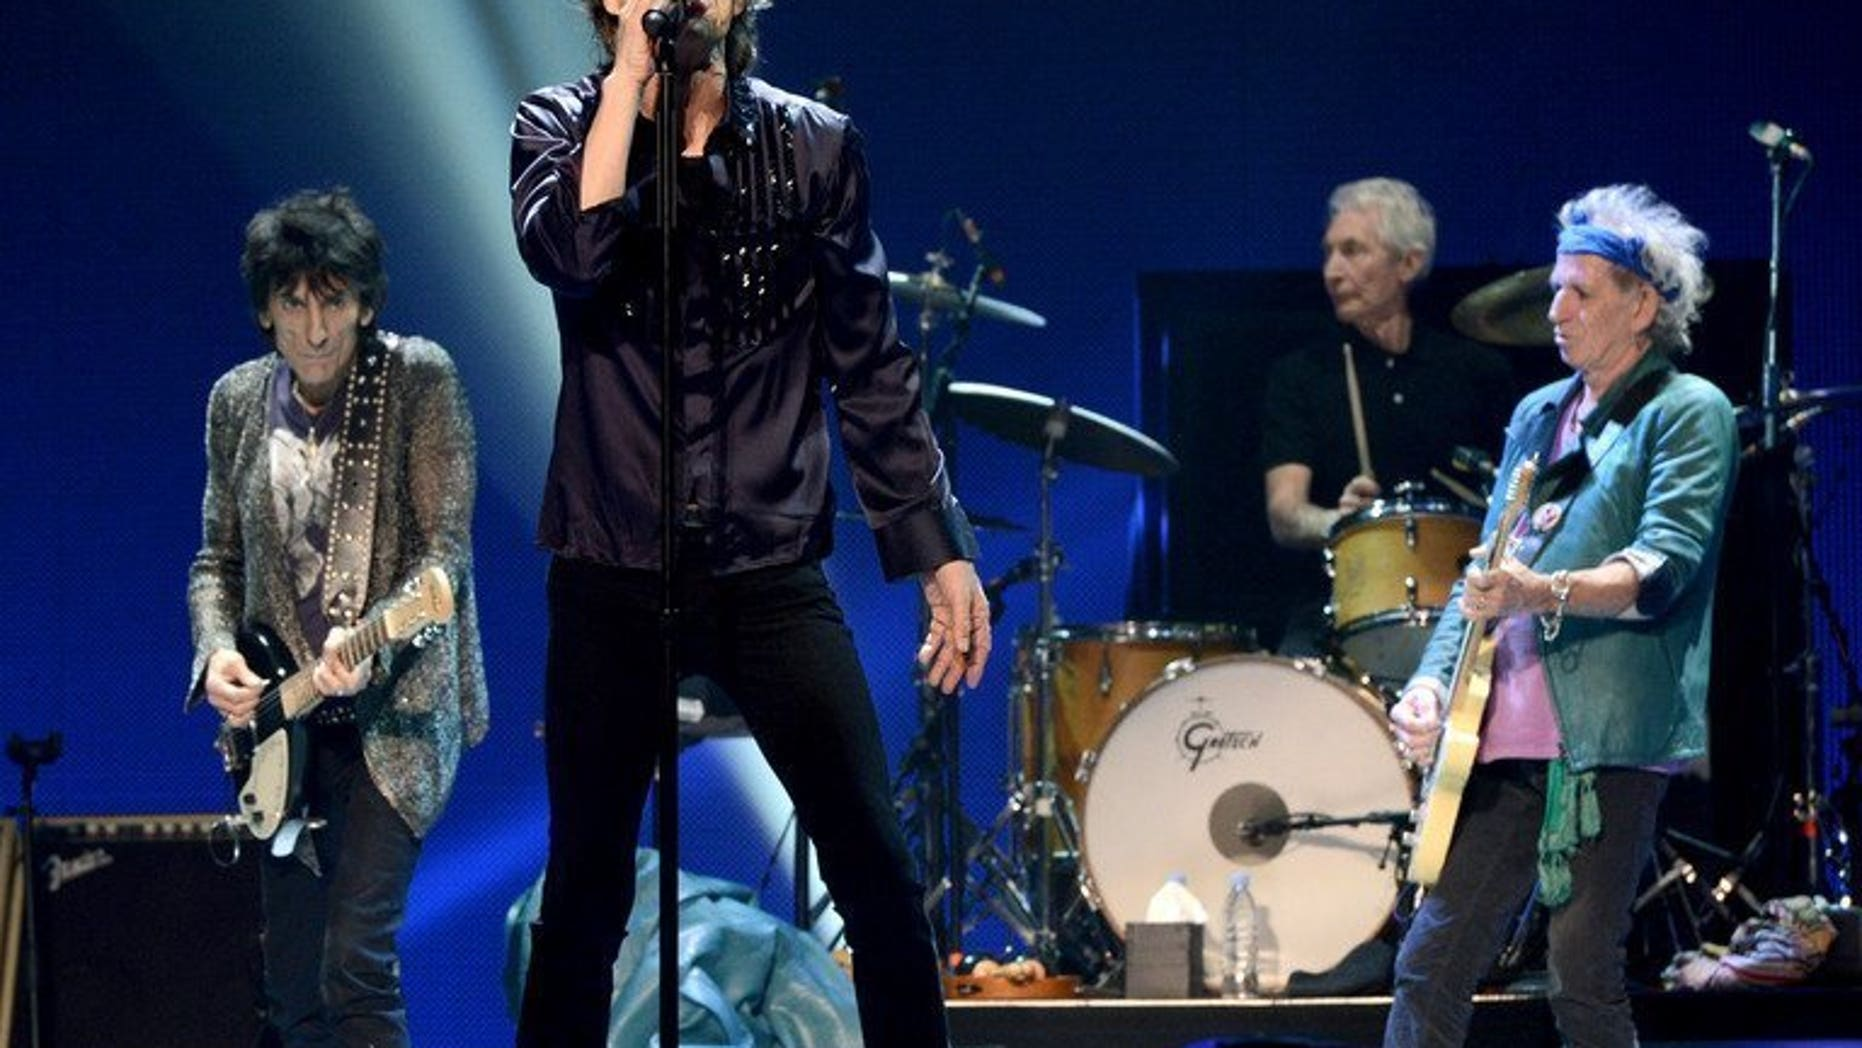 """Rolling Stones singer Mick Jagger performs with his band at The Honda Center in Anaheim, California on May 15, 2013. Jagger admitted on Friday he has found his career in the Rolling Stones """"intellectually undemanding"""" and sometimes wishes he had stuck to his original idea of becoming a teacher."""